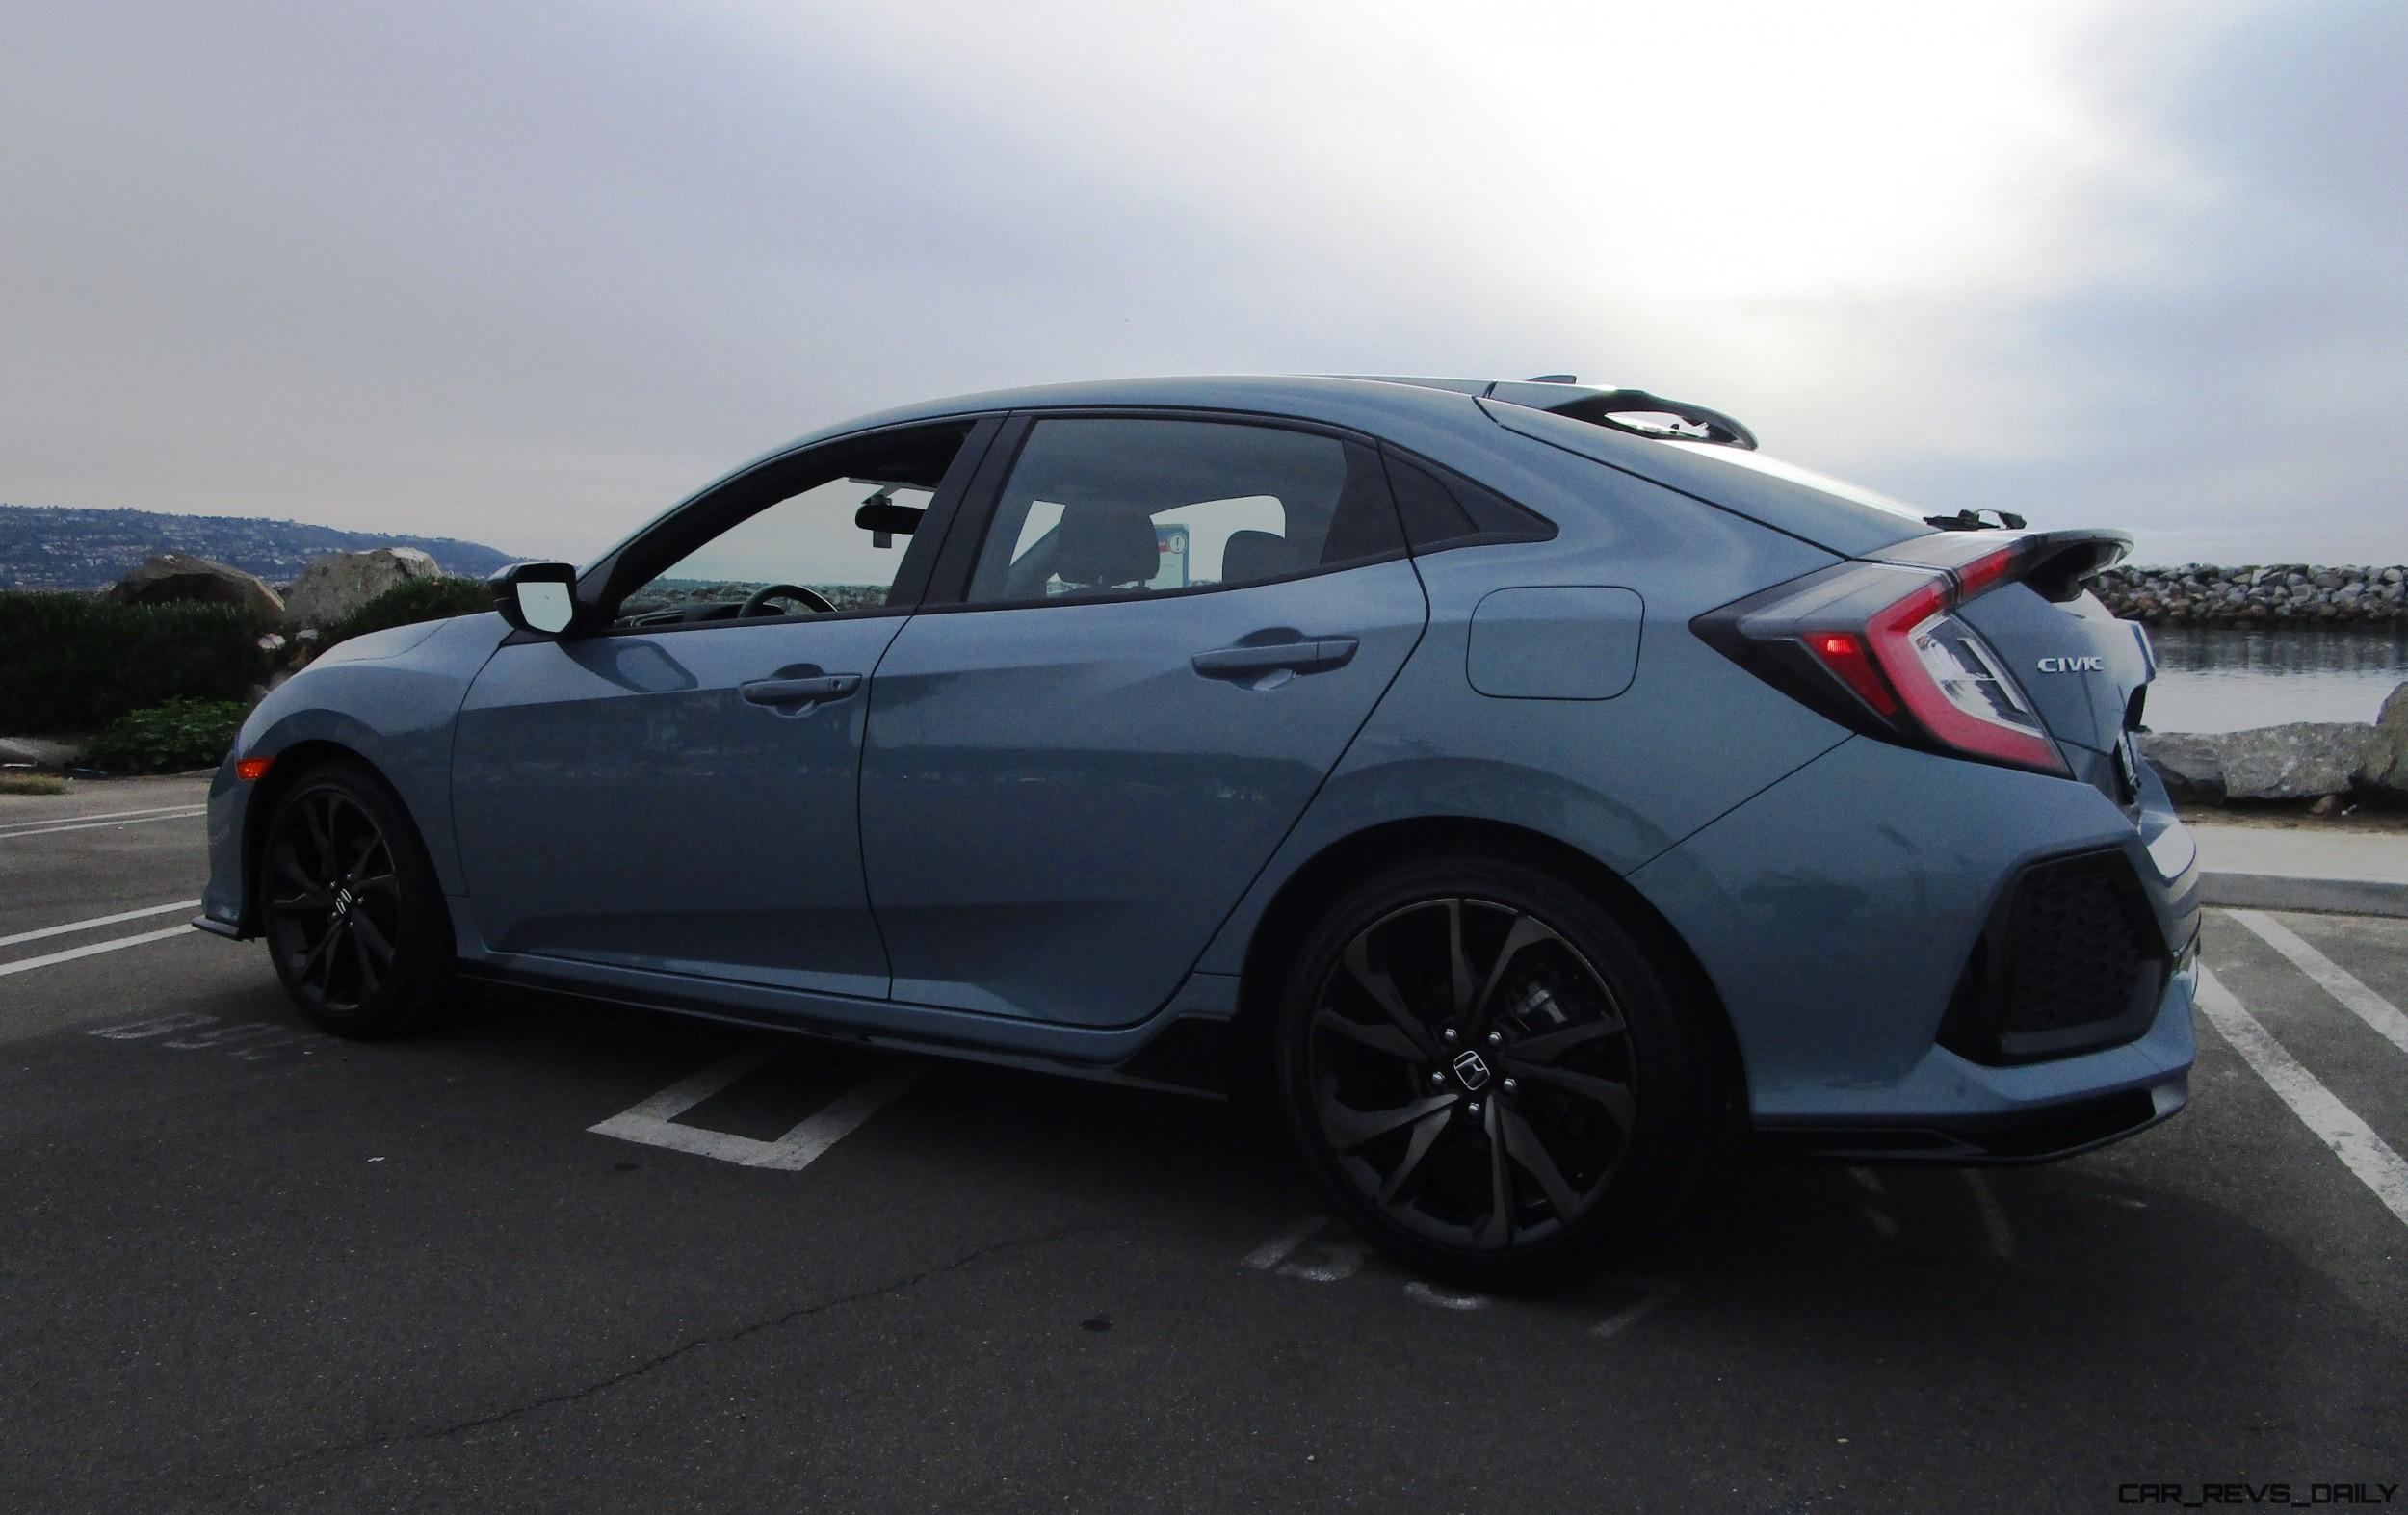 2017 honda civic sport 6mt hatchback road test review by ben lewis. Black Bedroom Furniture Sets. Home Design Ideas